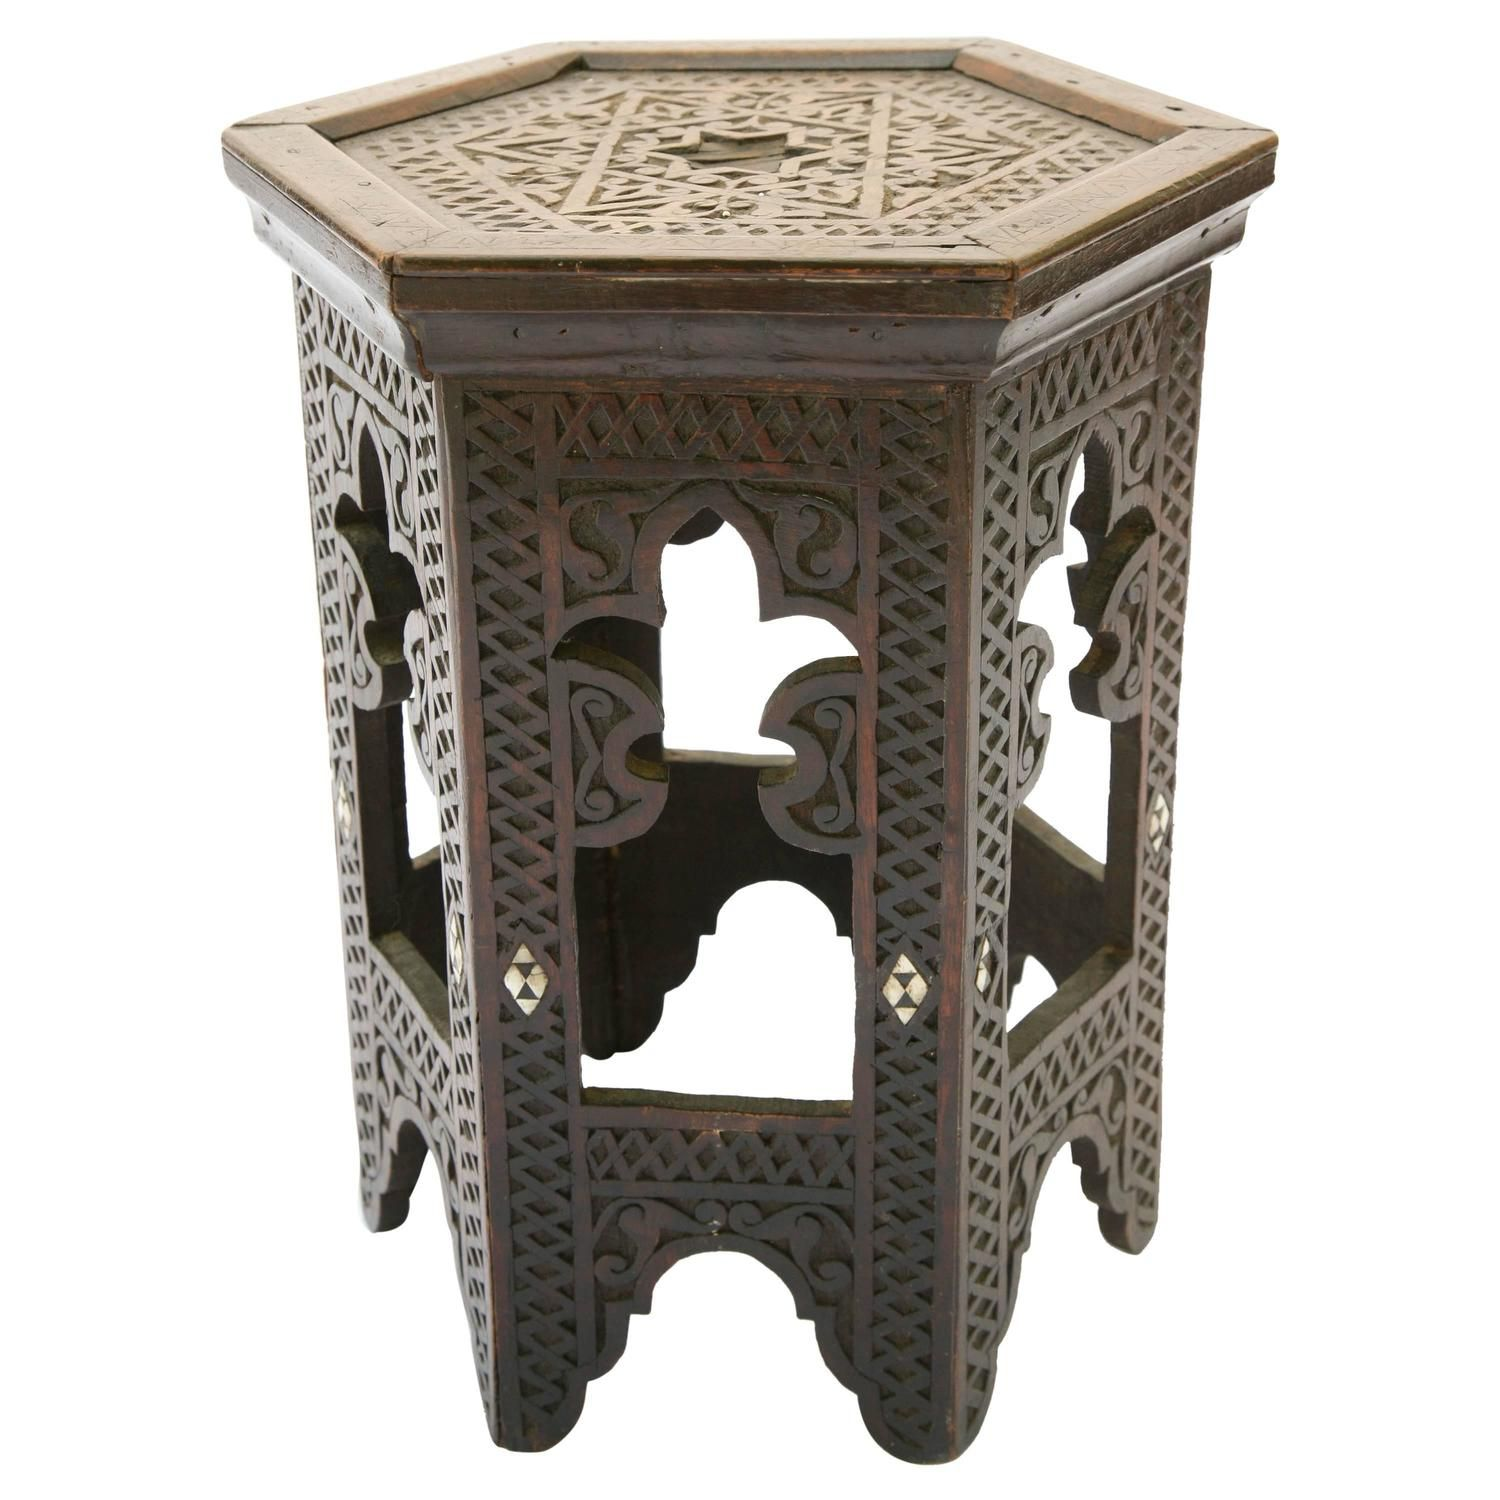 anglo accent table favorites moroccan side tables for modern dining room wall decor ideas outdoor chairs bunnings storage with baskets distressed nightstand west elm console gold